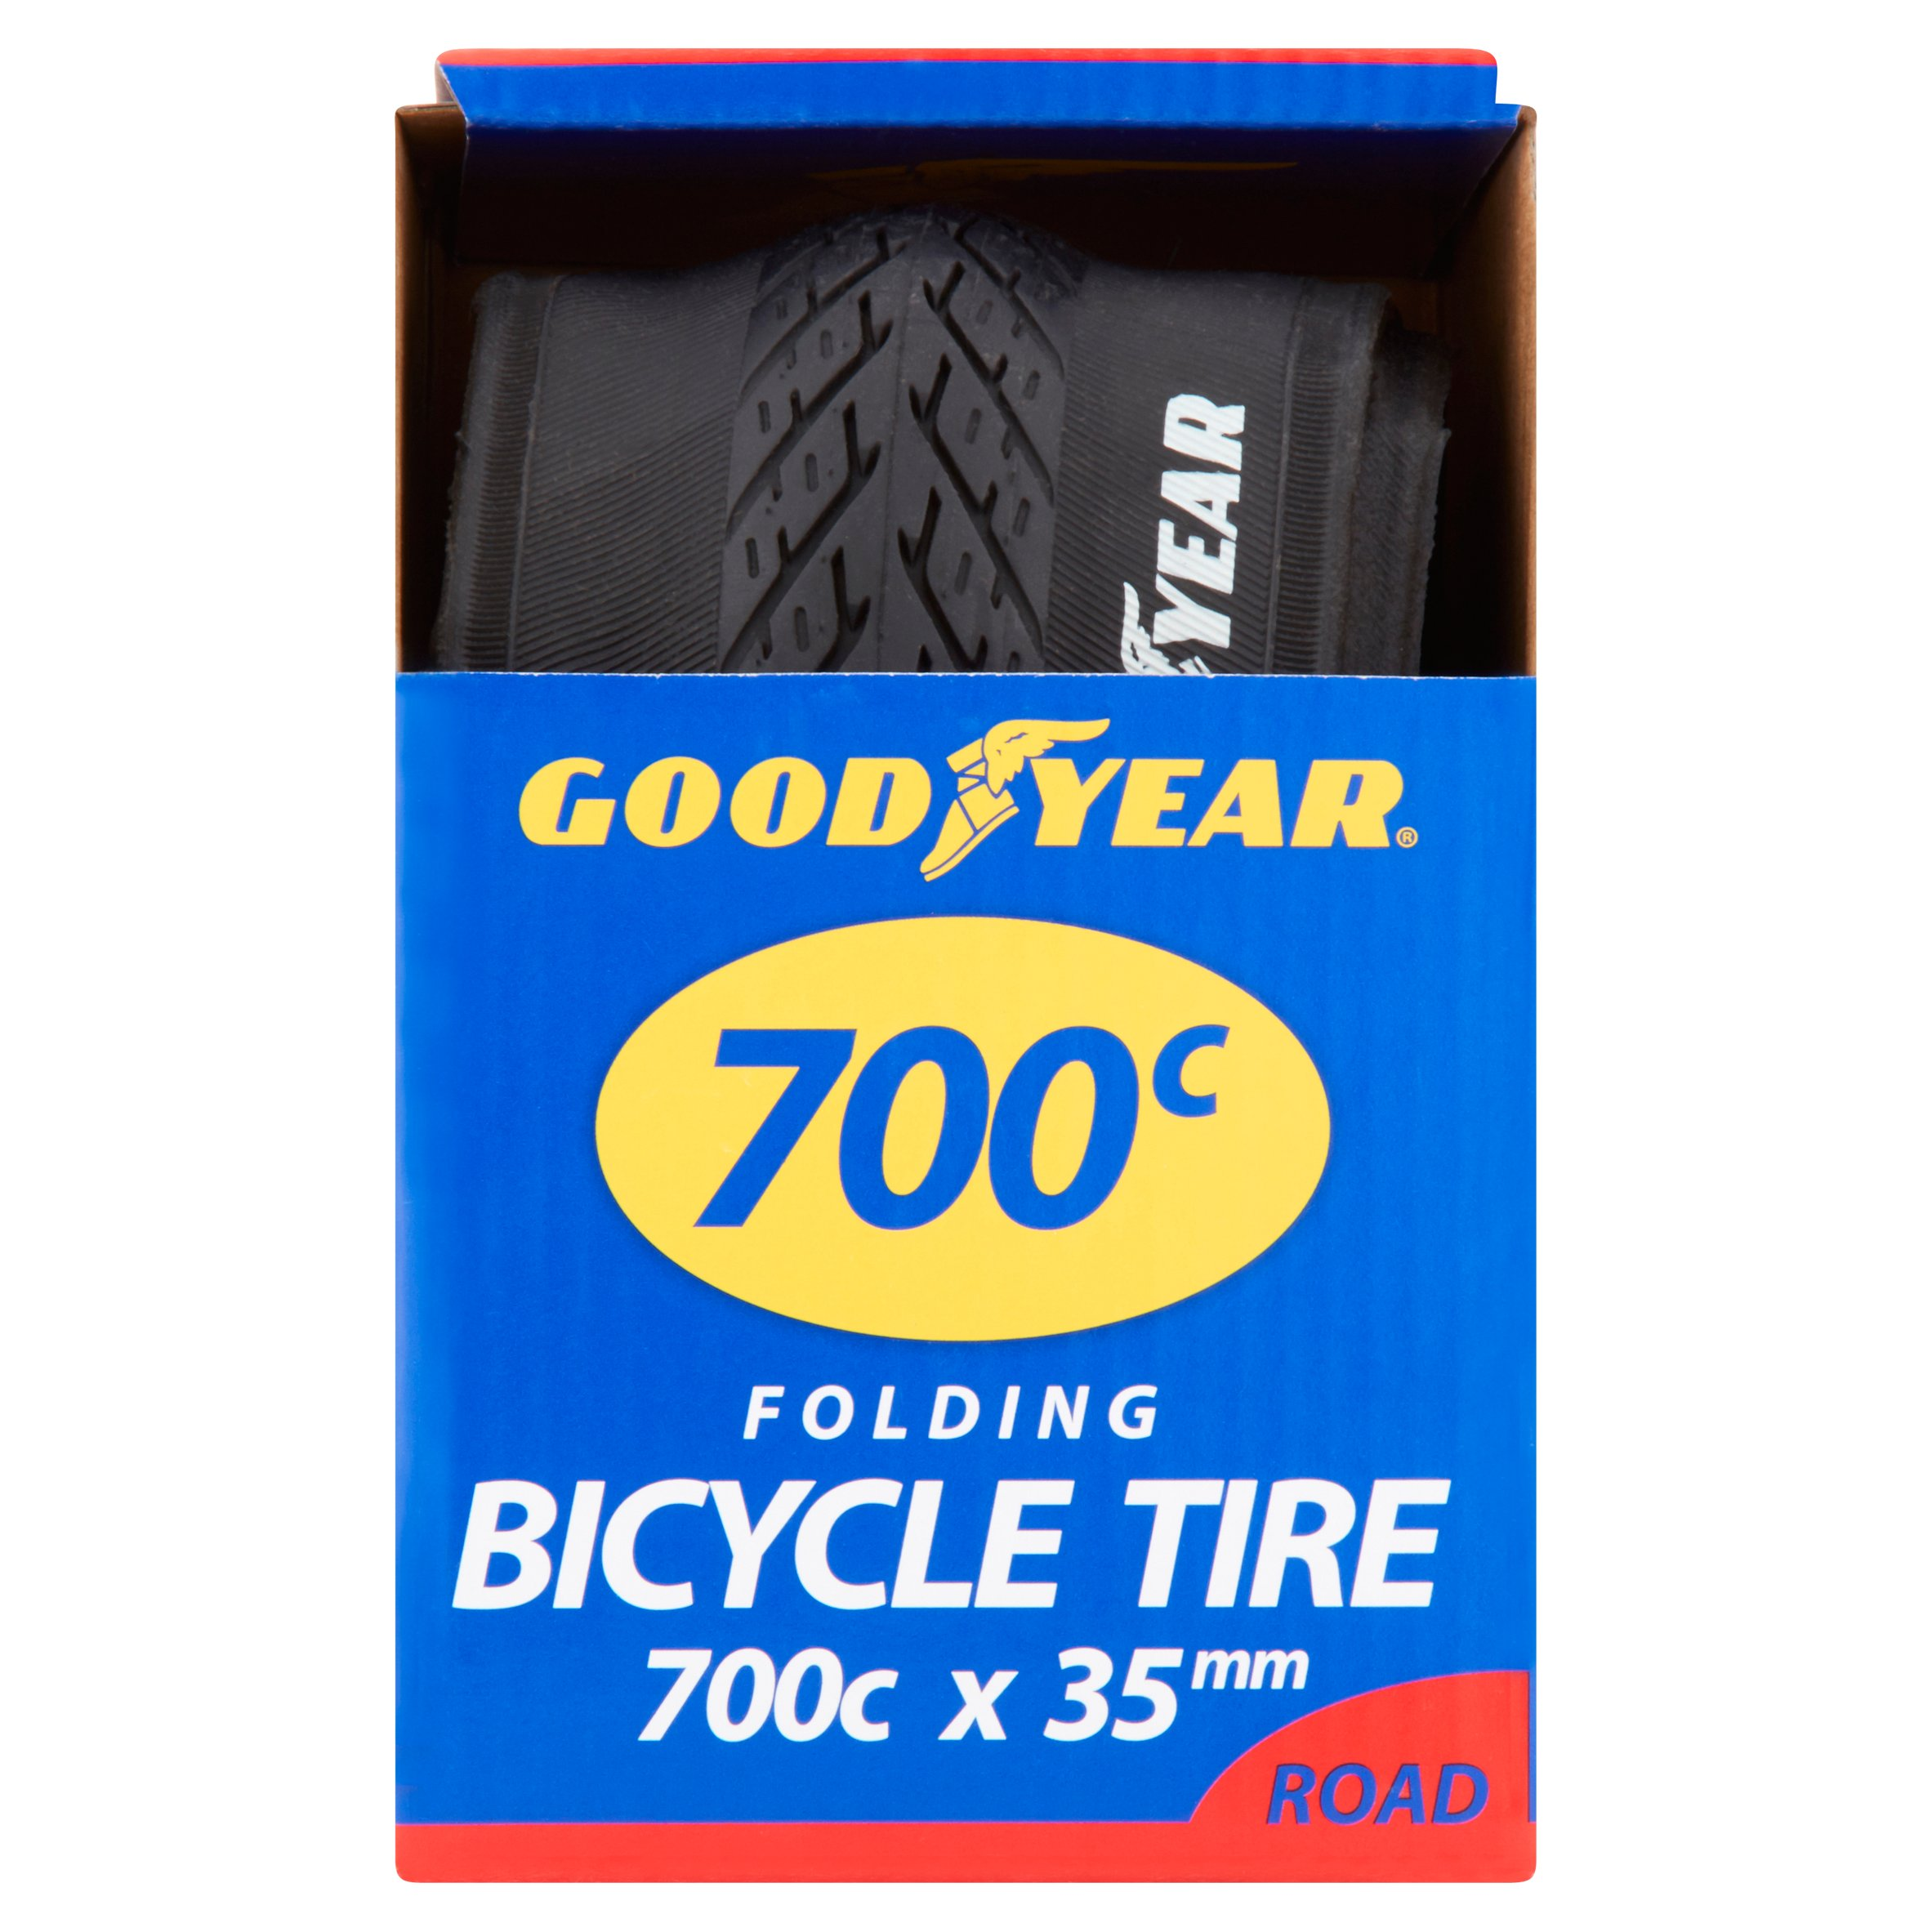 Good Year 700c Folding Road Bicycle Tire